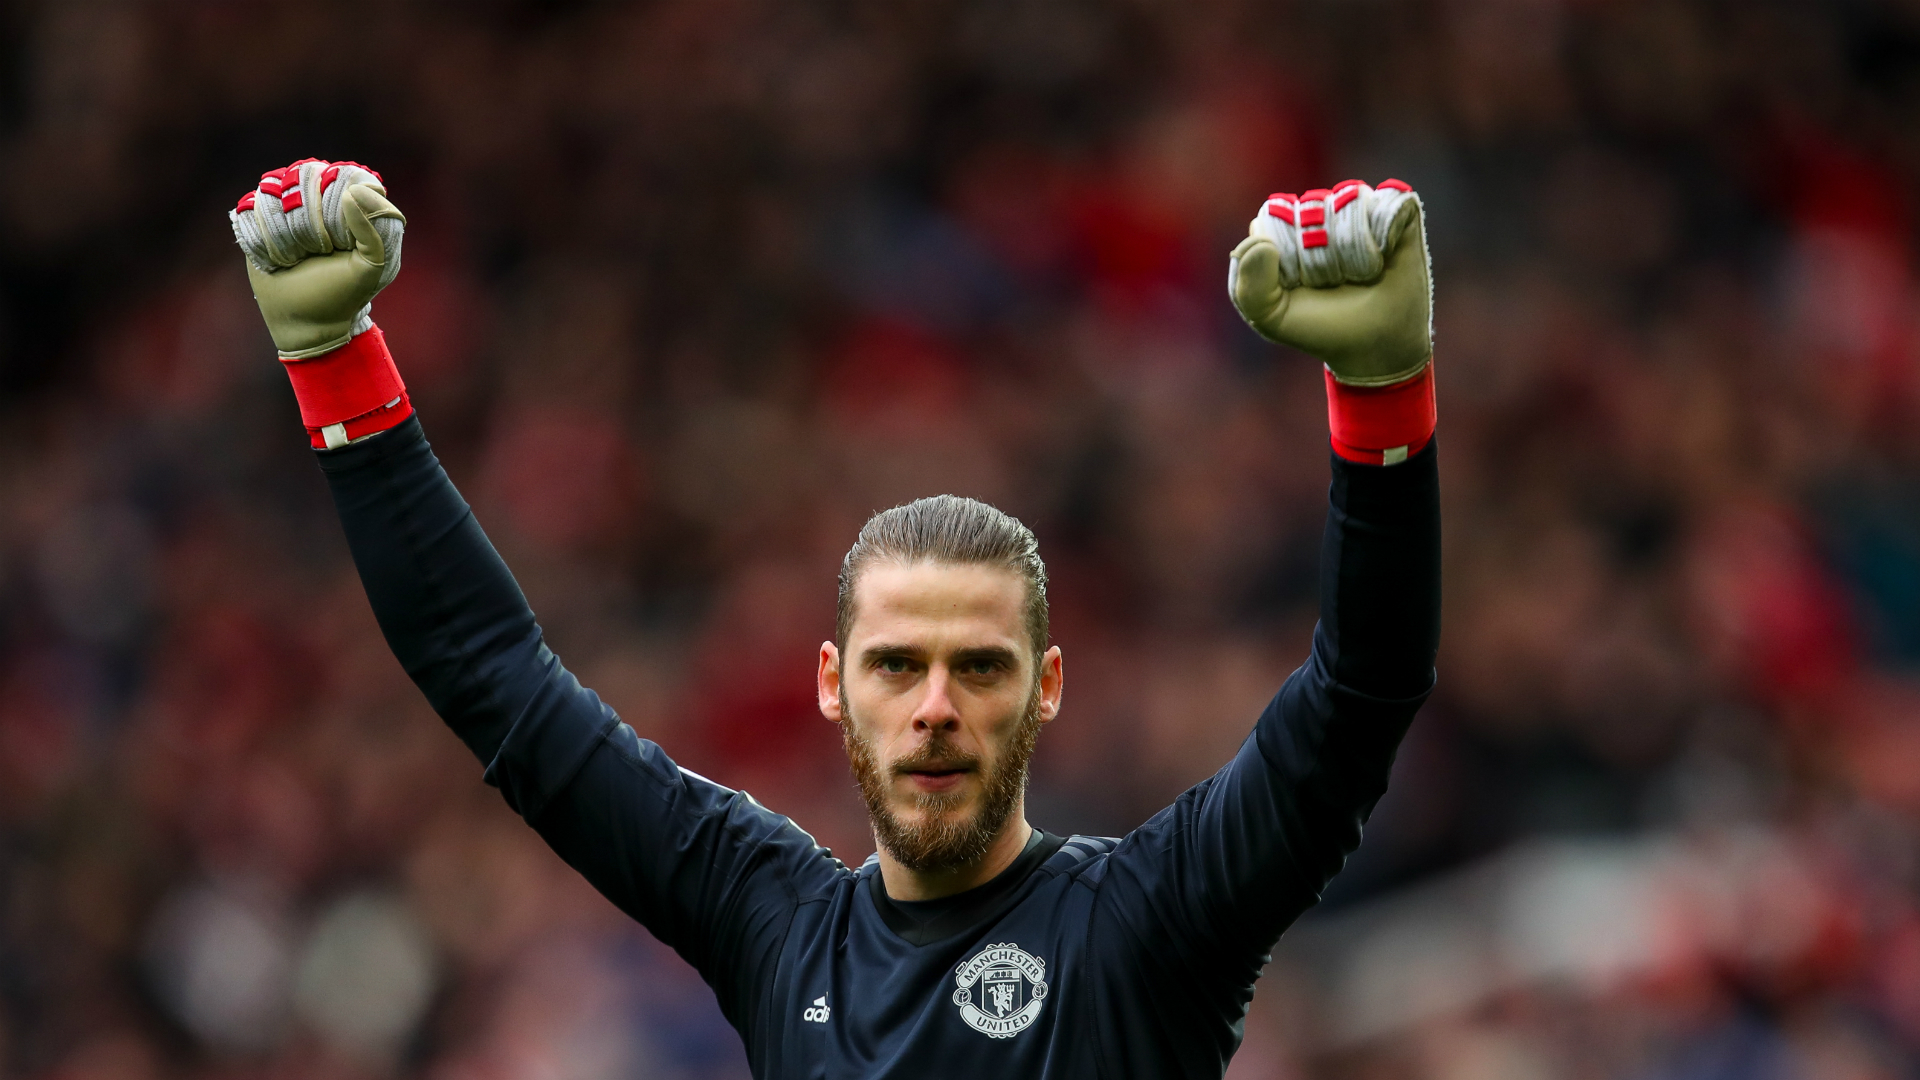 De Gea Passes Ronaldo S Manchester United Awards Record